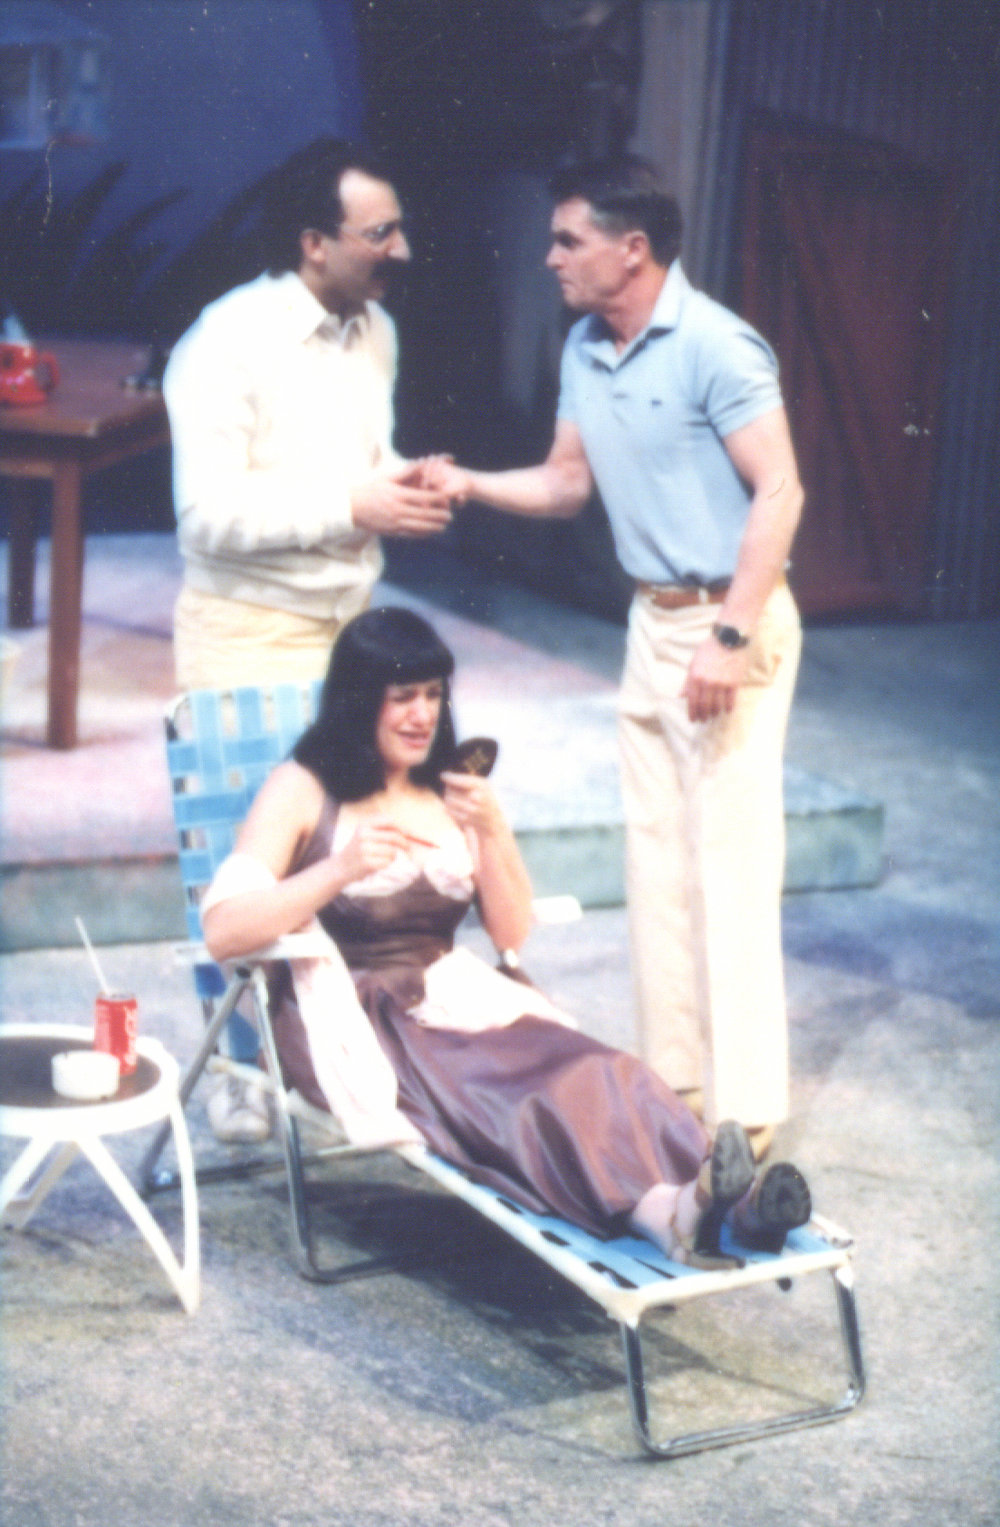 Backyard Beguine (March 1987) Production Image 1.jpg